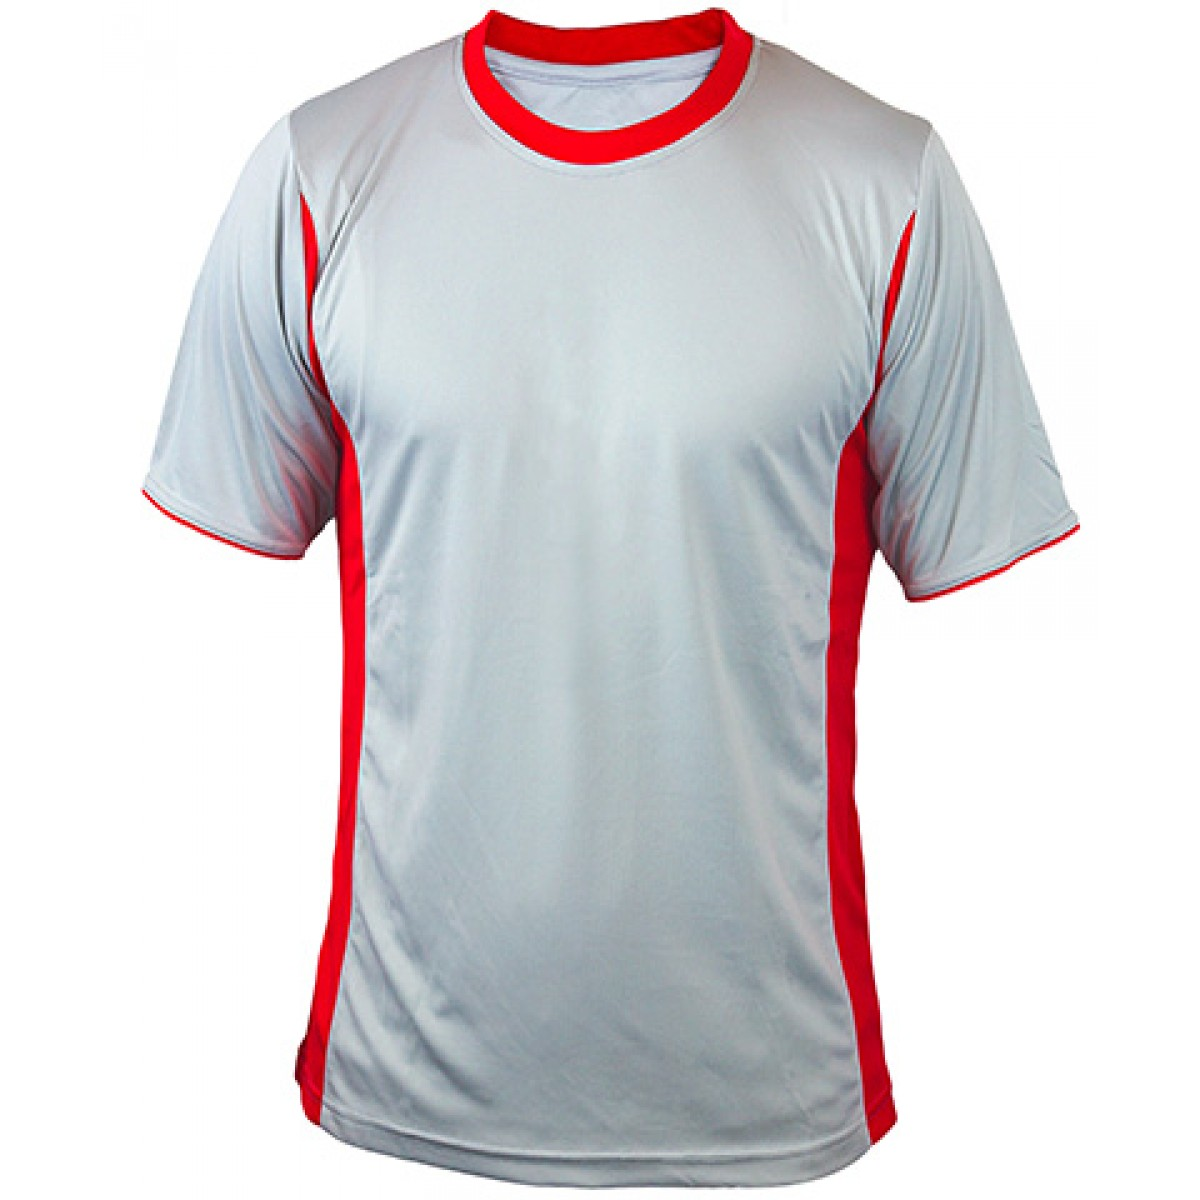 Gray Short Sleeves Performance With Red Side Insert-Gray/Red-3XL